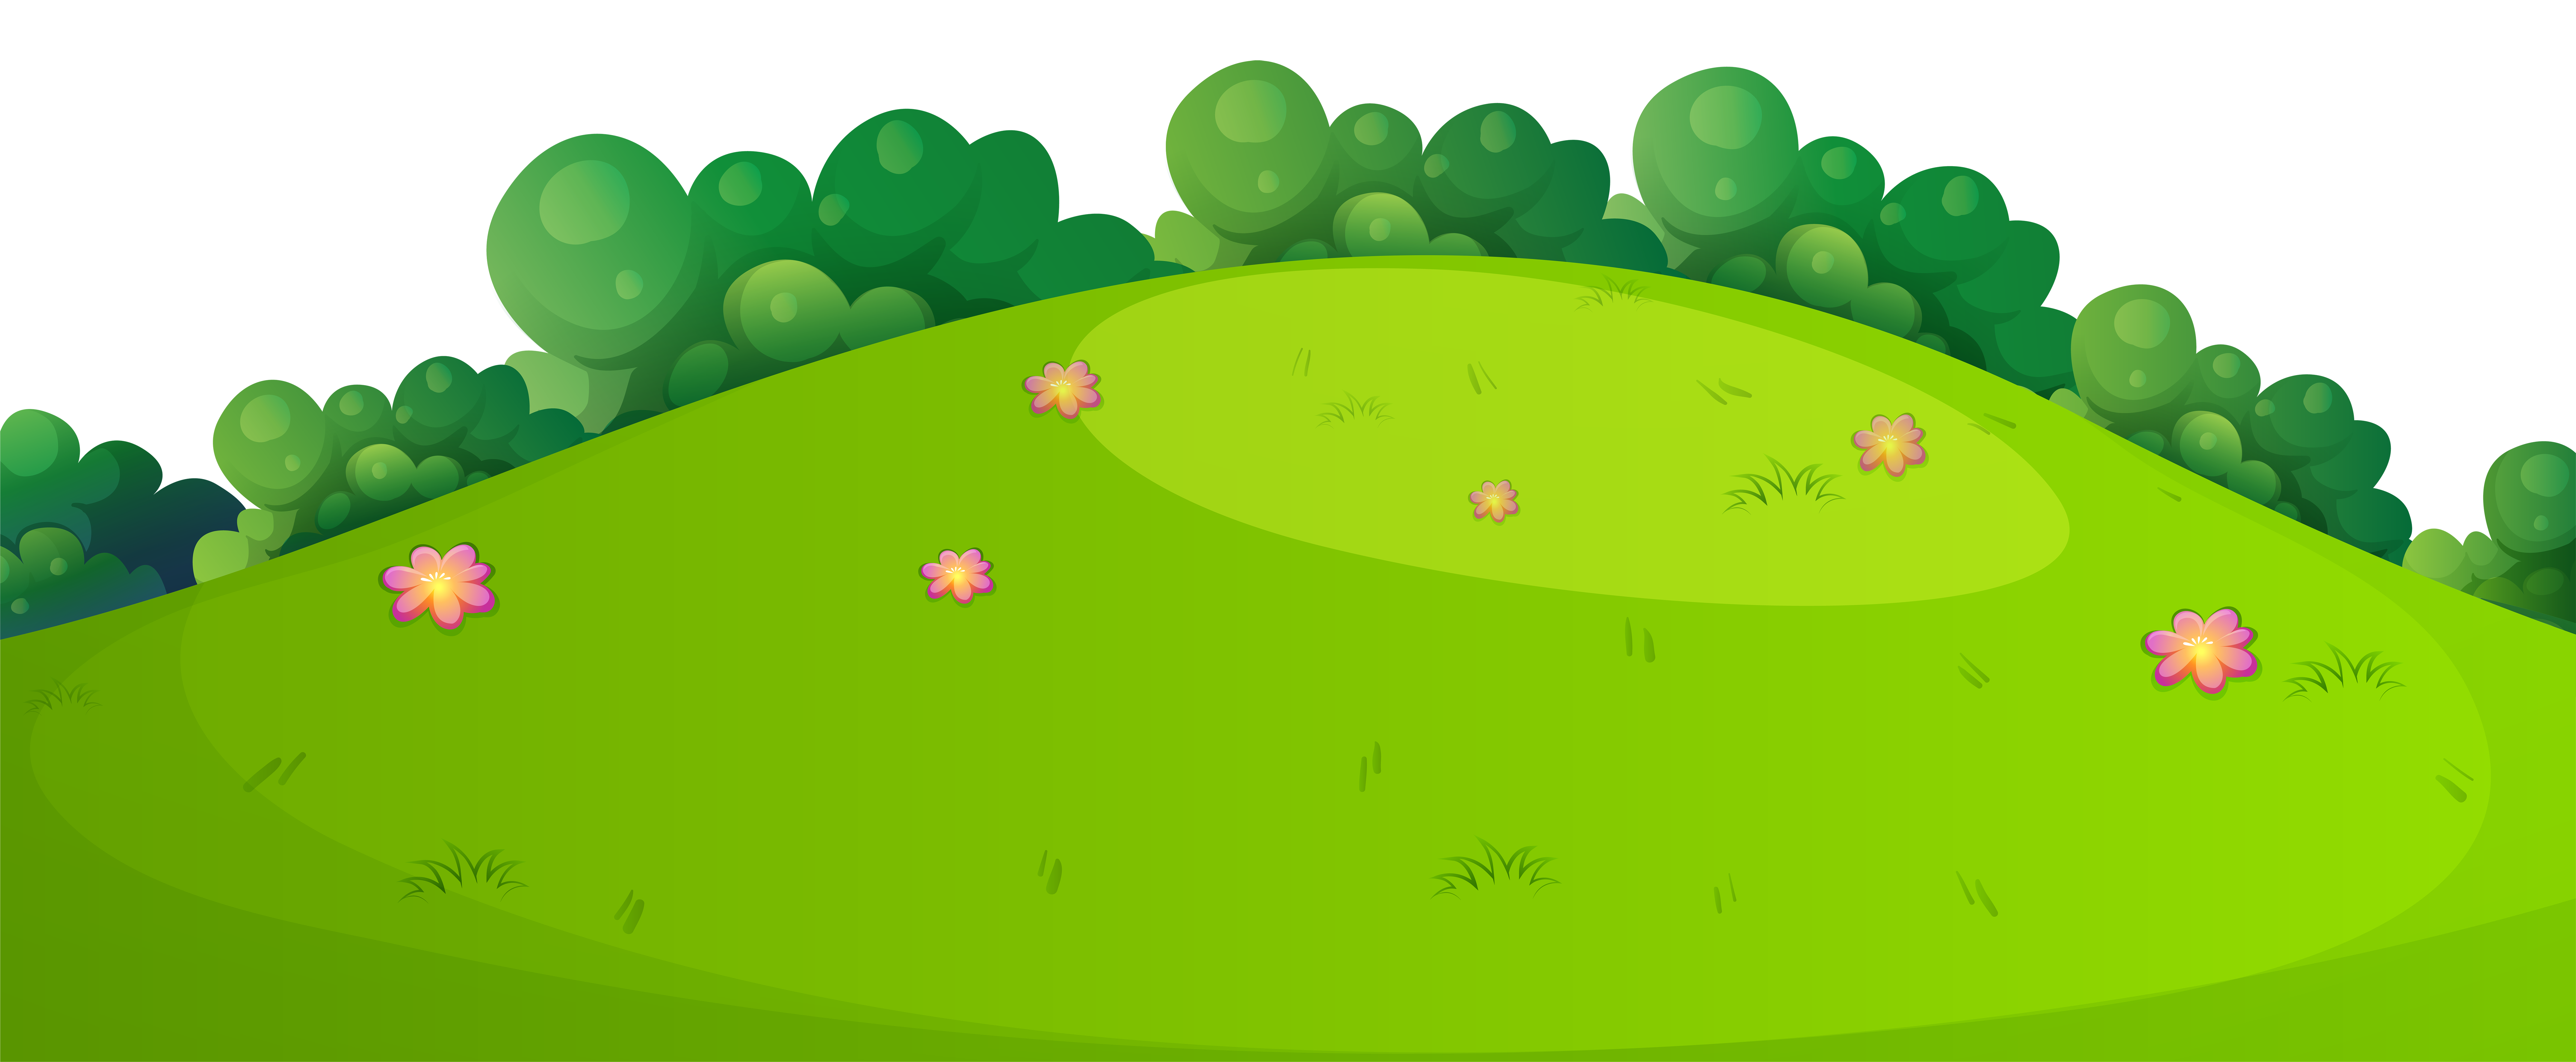 Meadow Background Clipart.